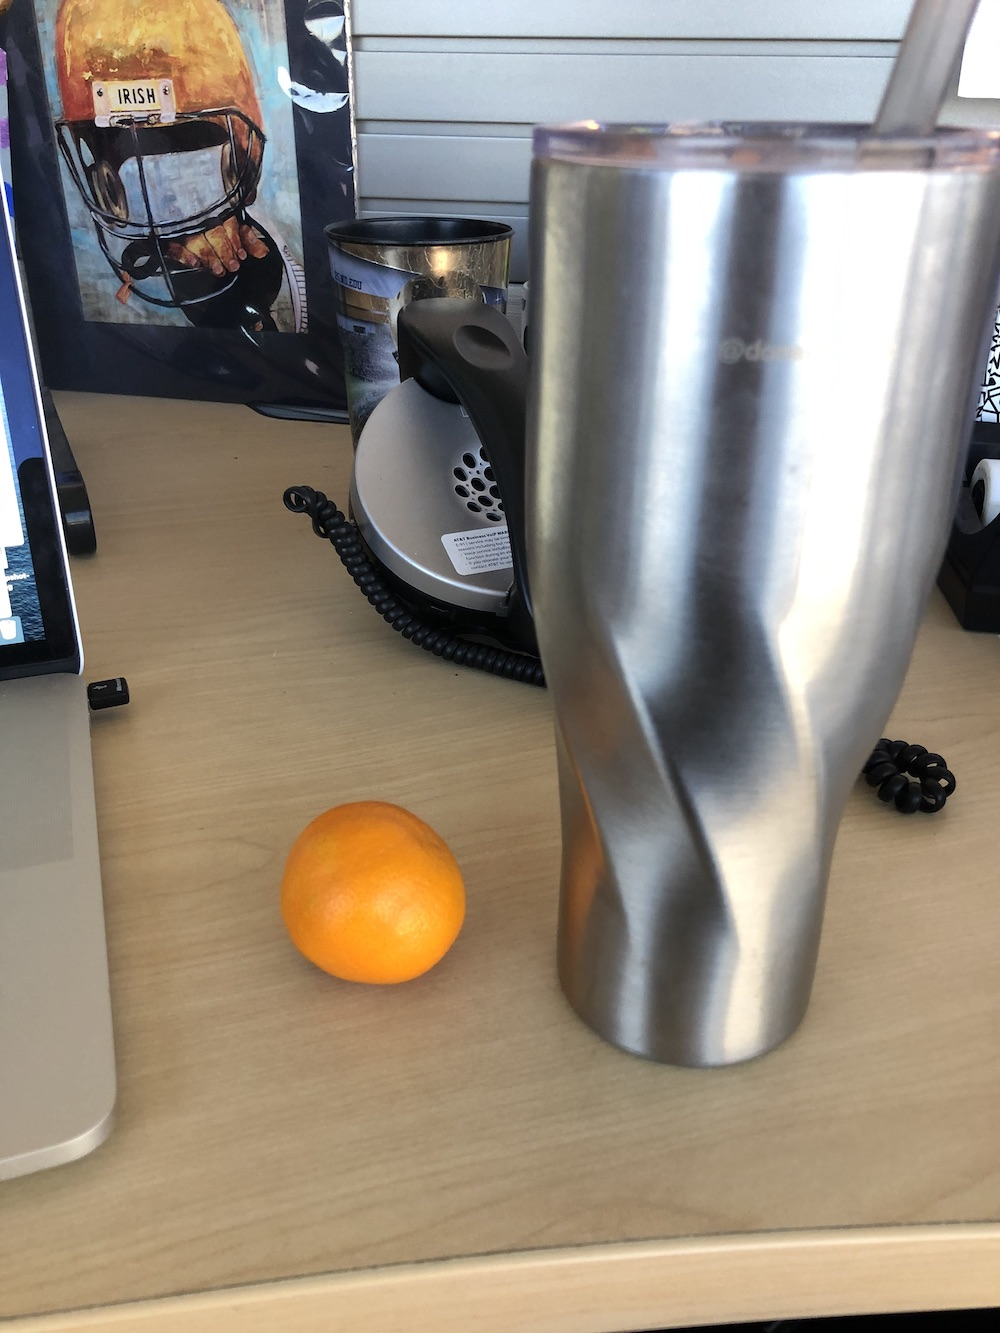 Water with an orange